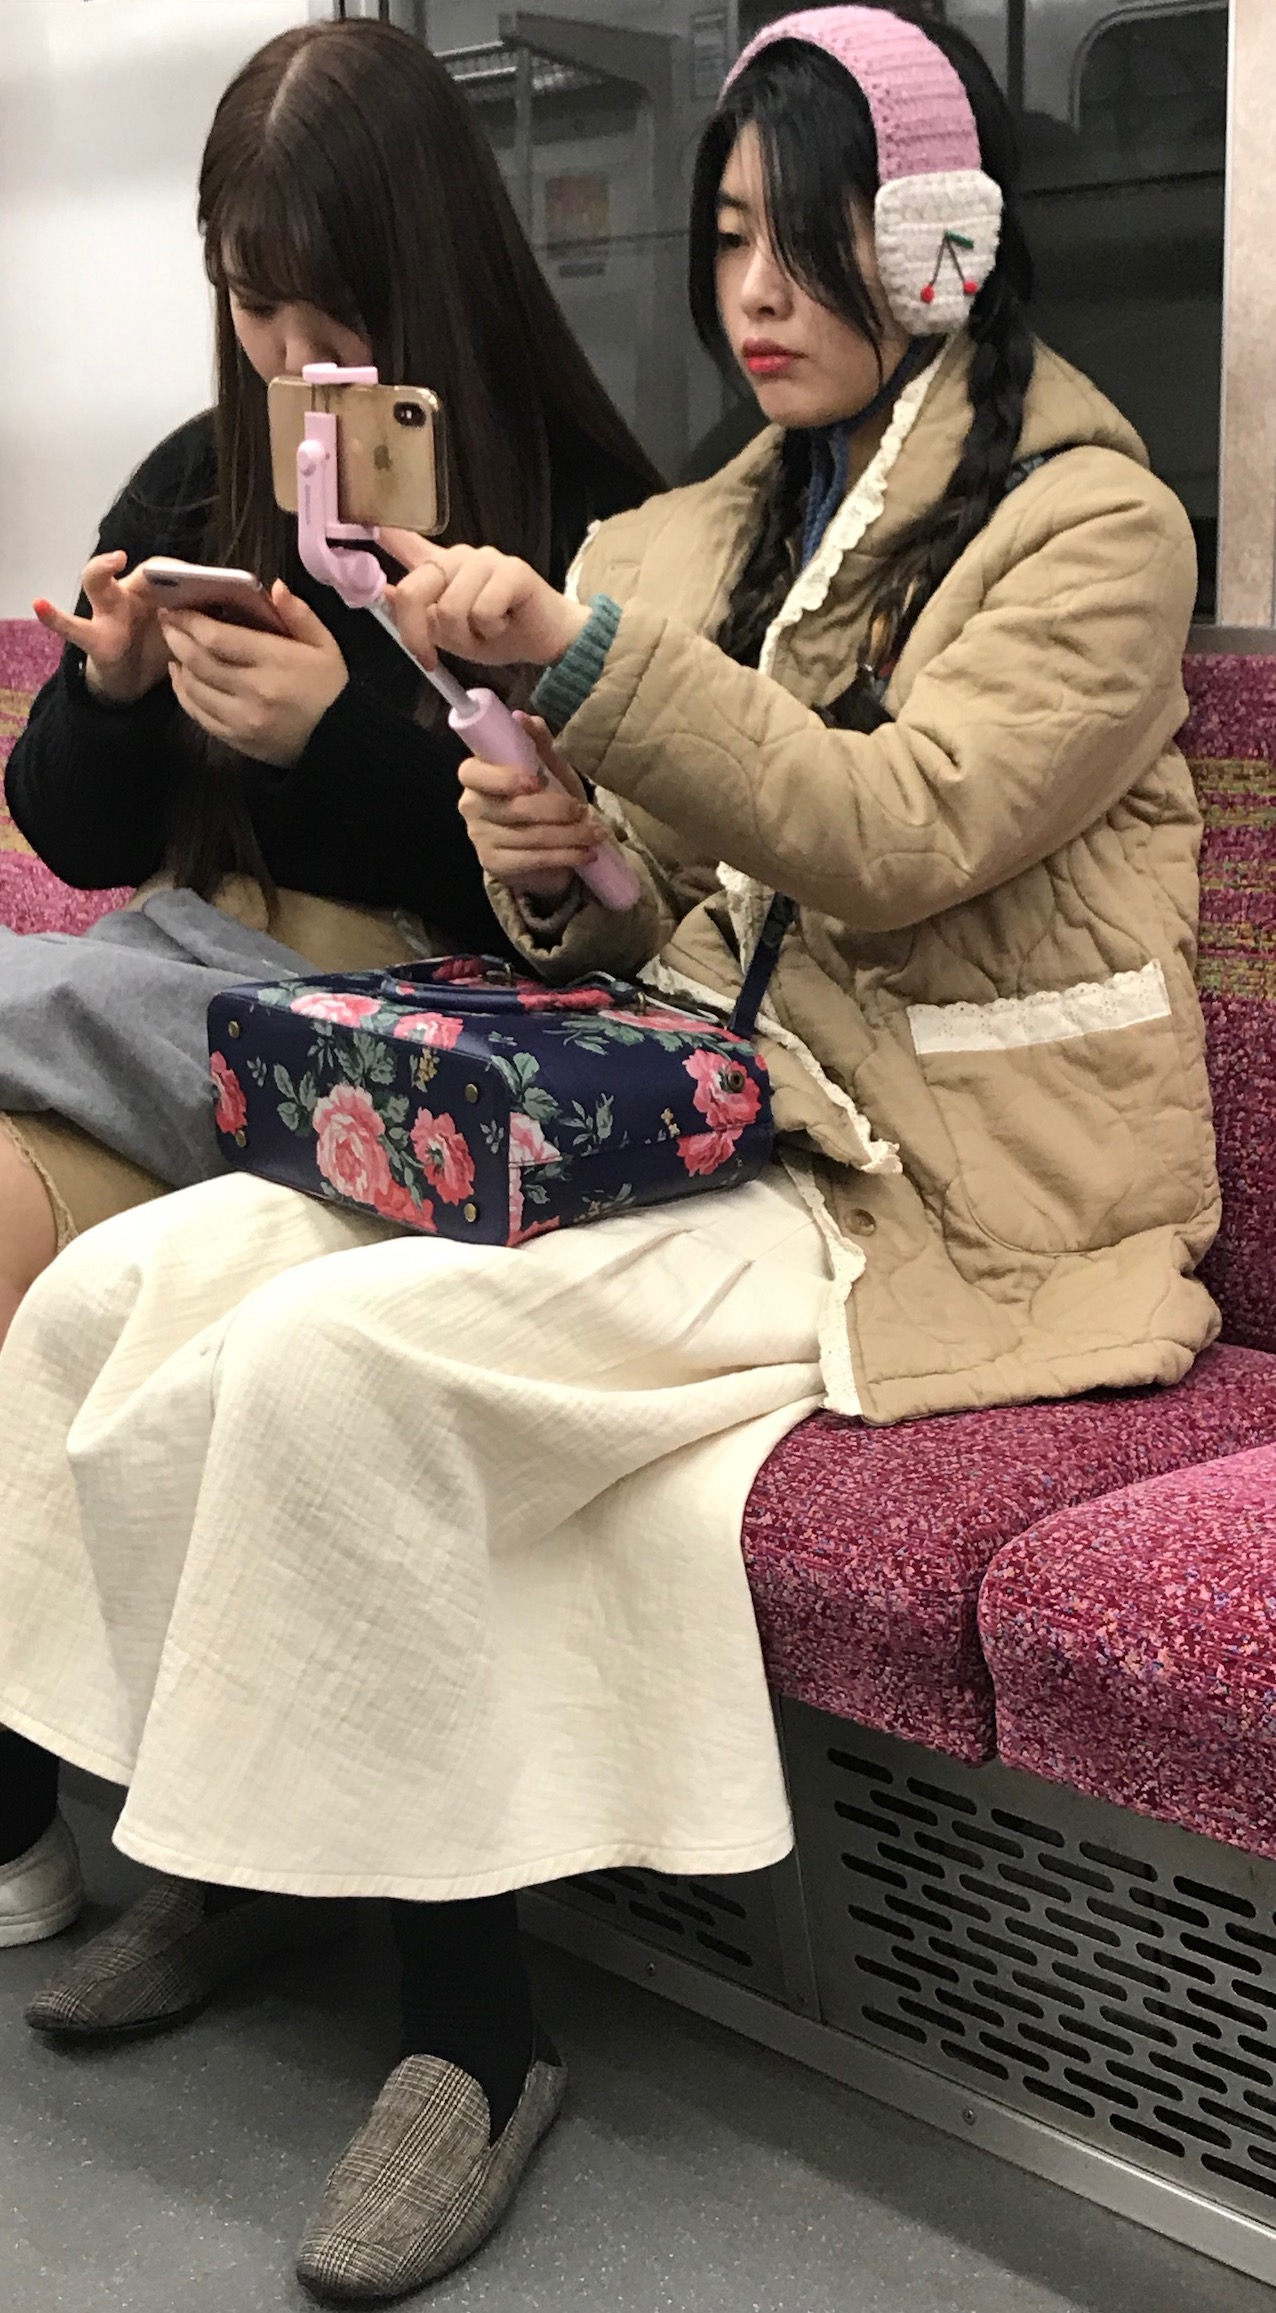 Selfie silliness on The Tokyo Subway.